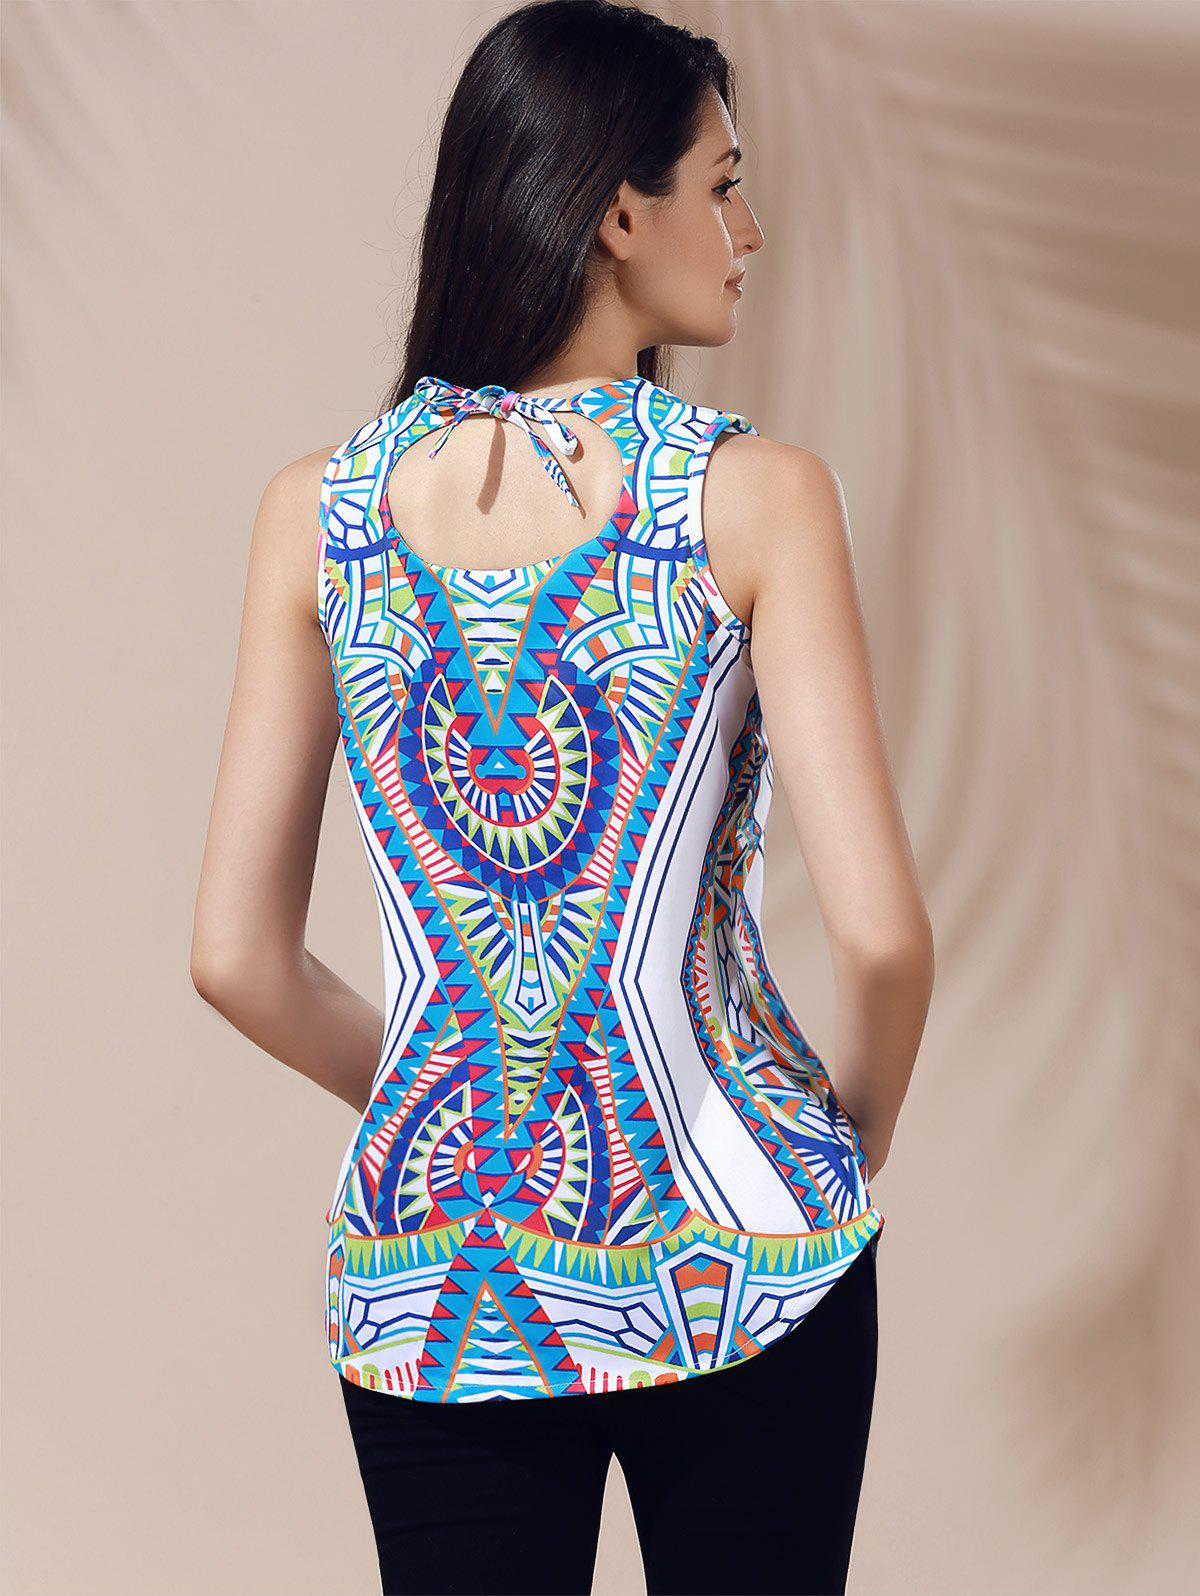 Ethnic Women's V-Neck Printed Cut Out Top - GREEN XL